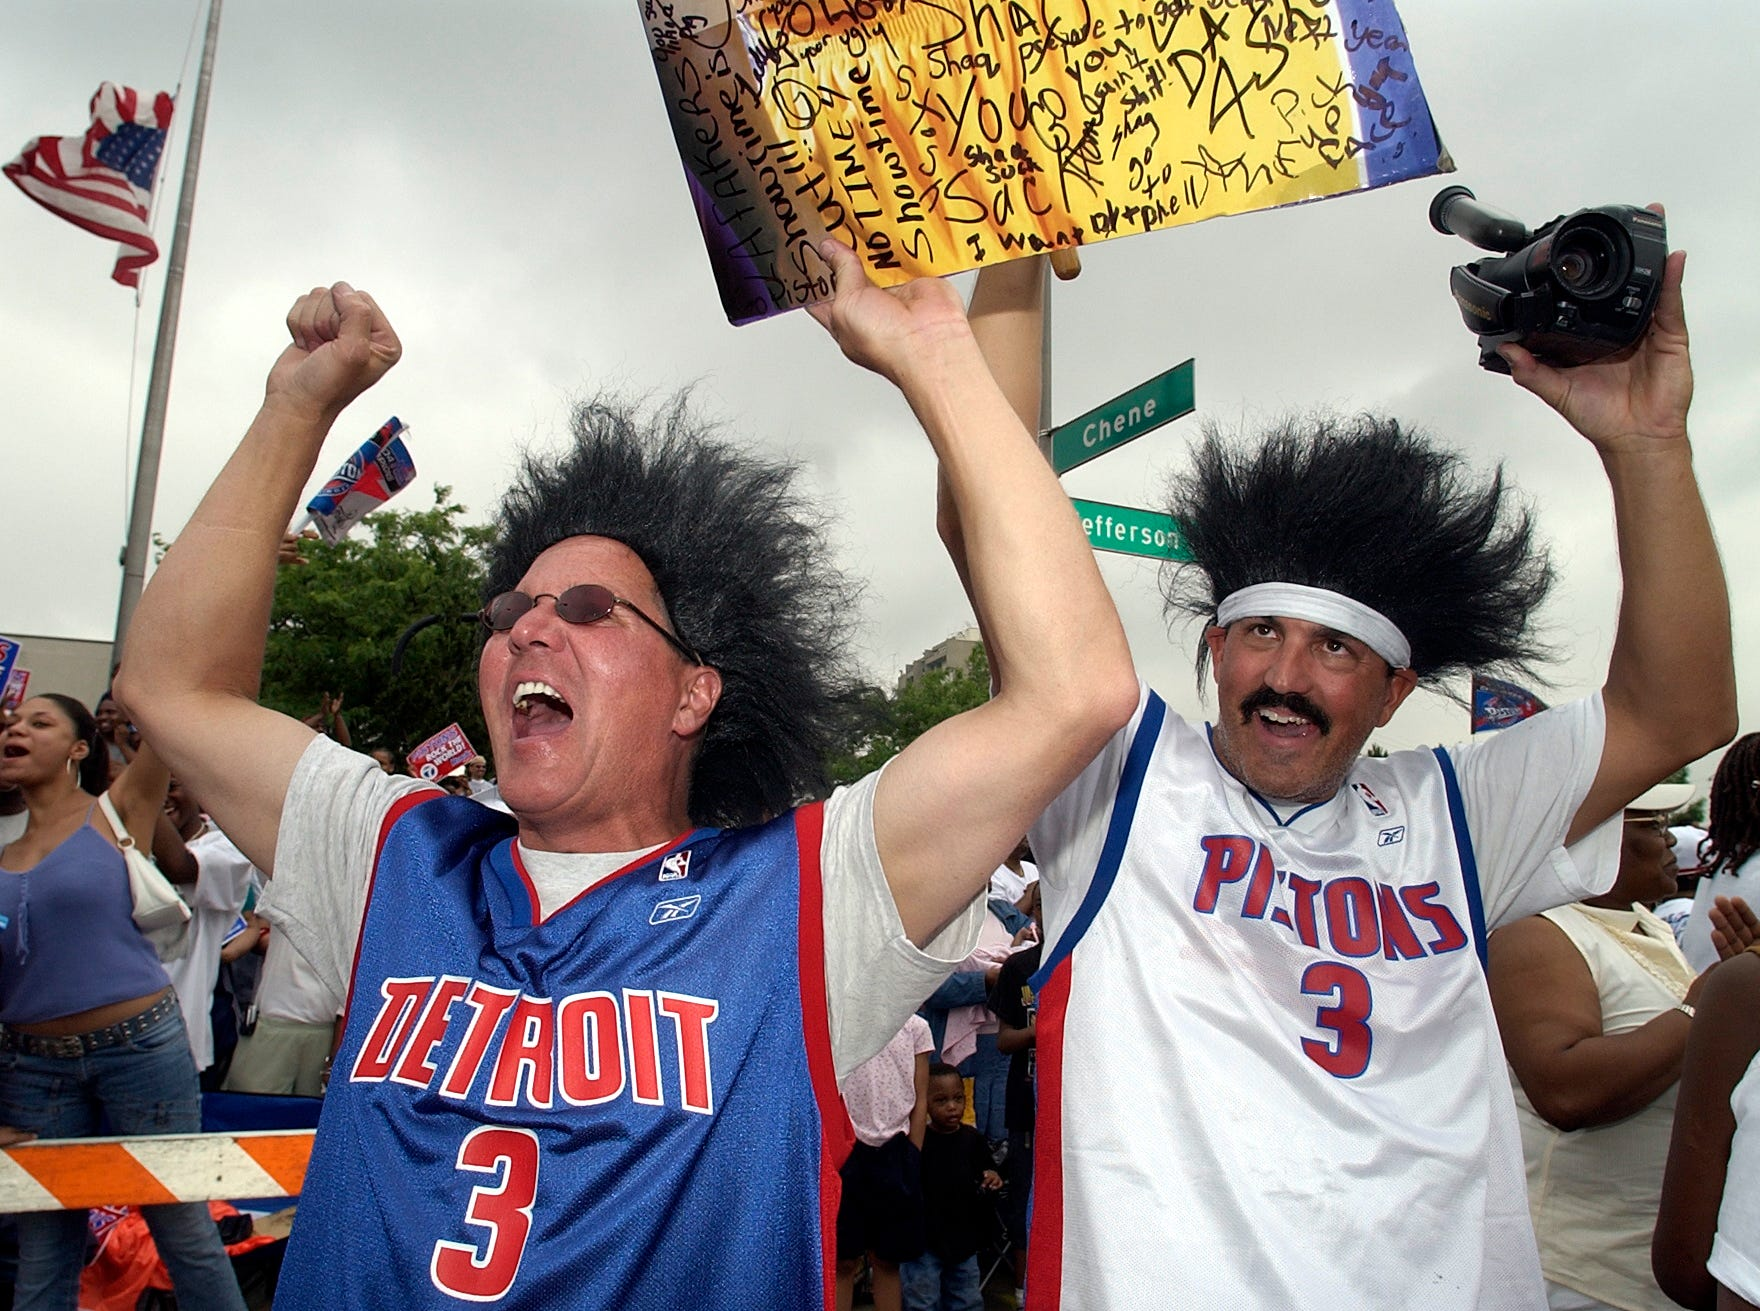 Fans cheer the Pistons during the parade.